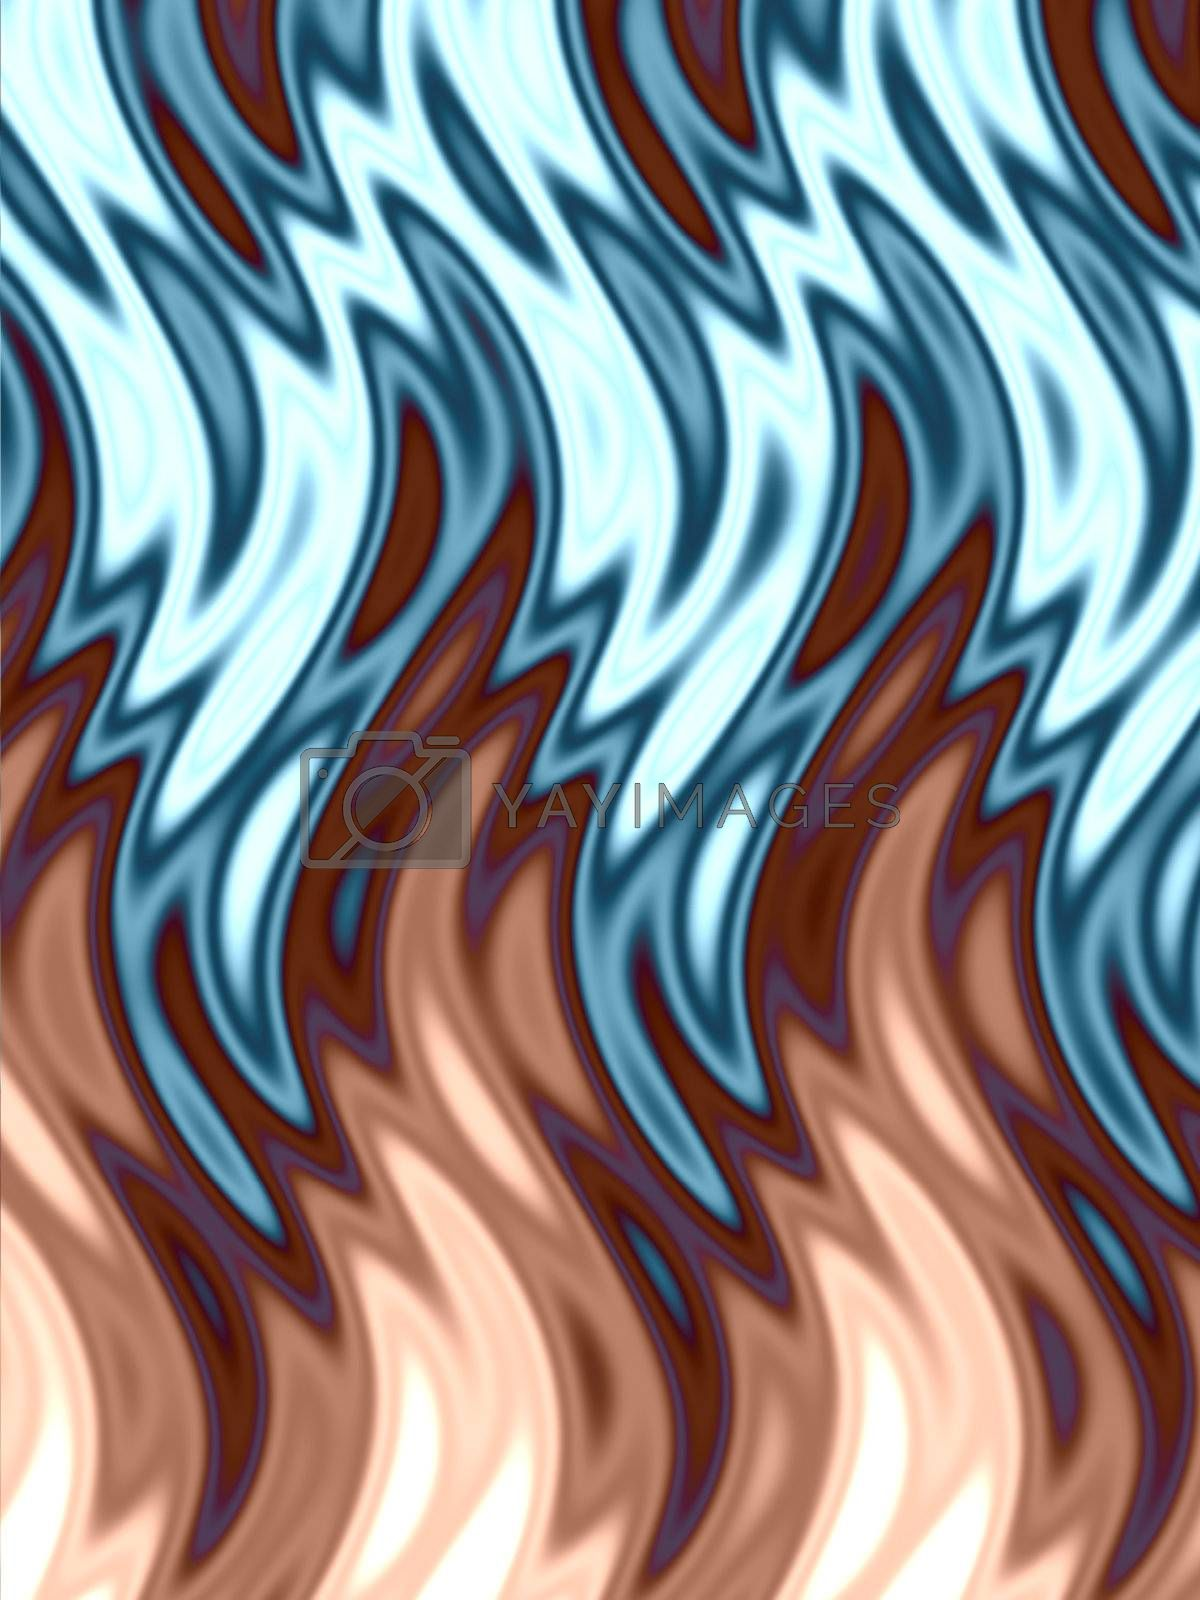 a wavy, abstract flames pattern